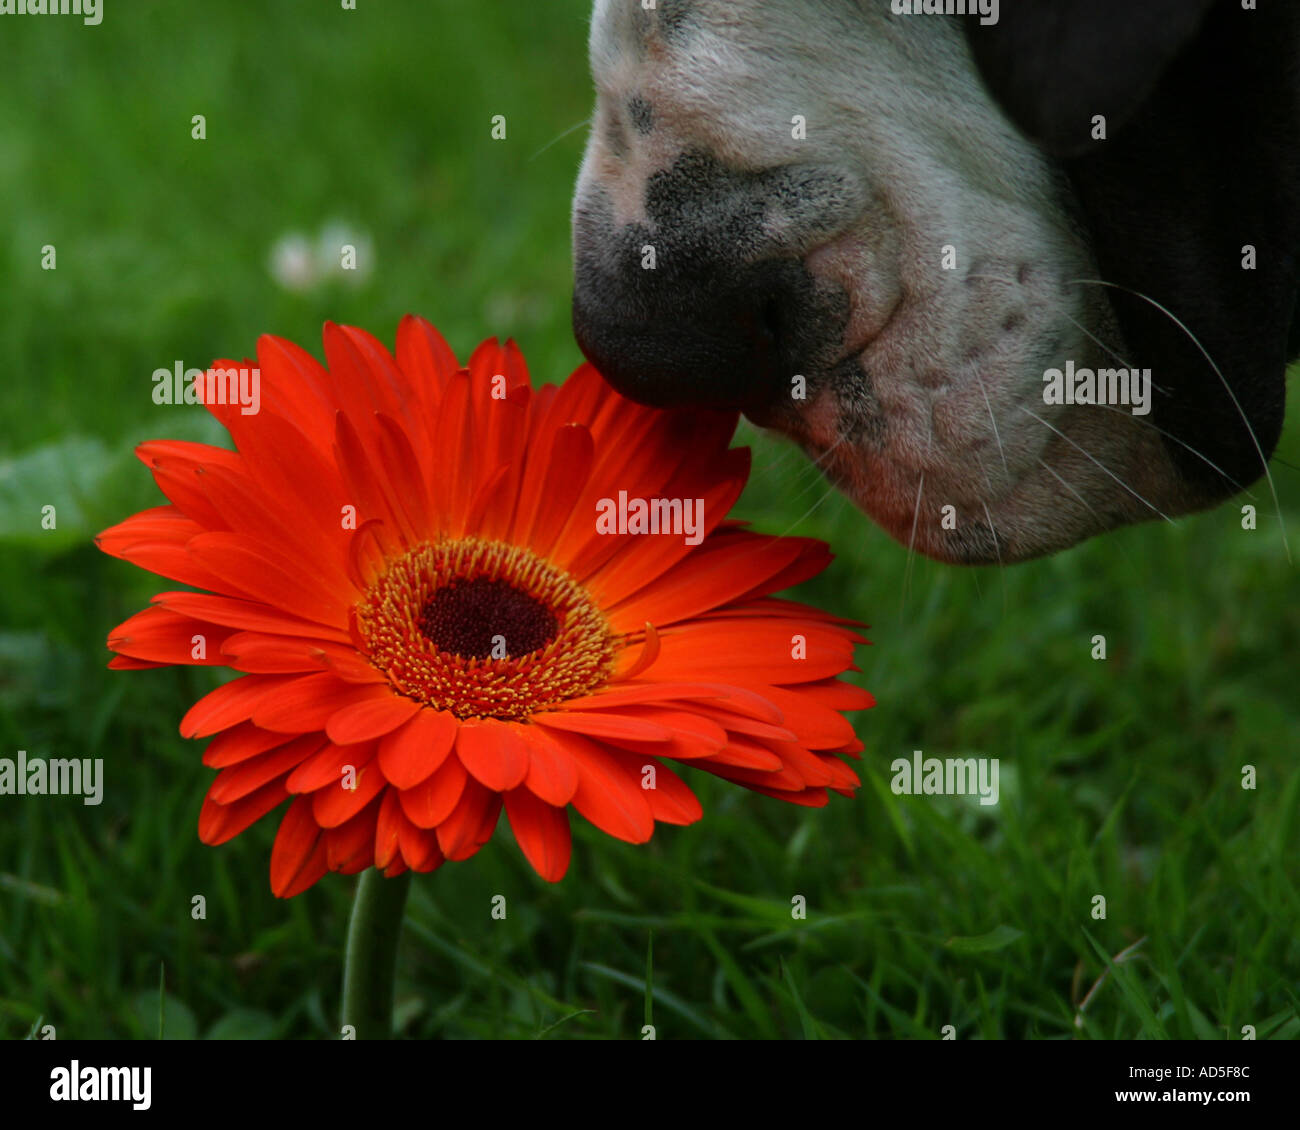 Great Dane smelling flower - Stock Image